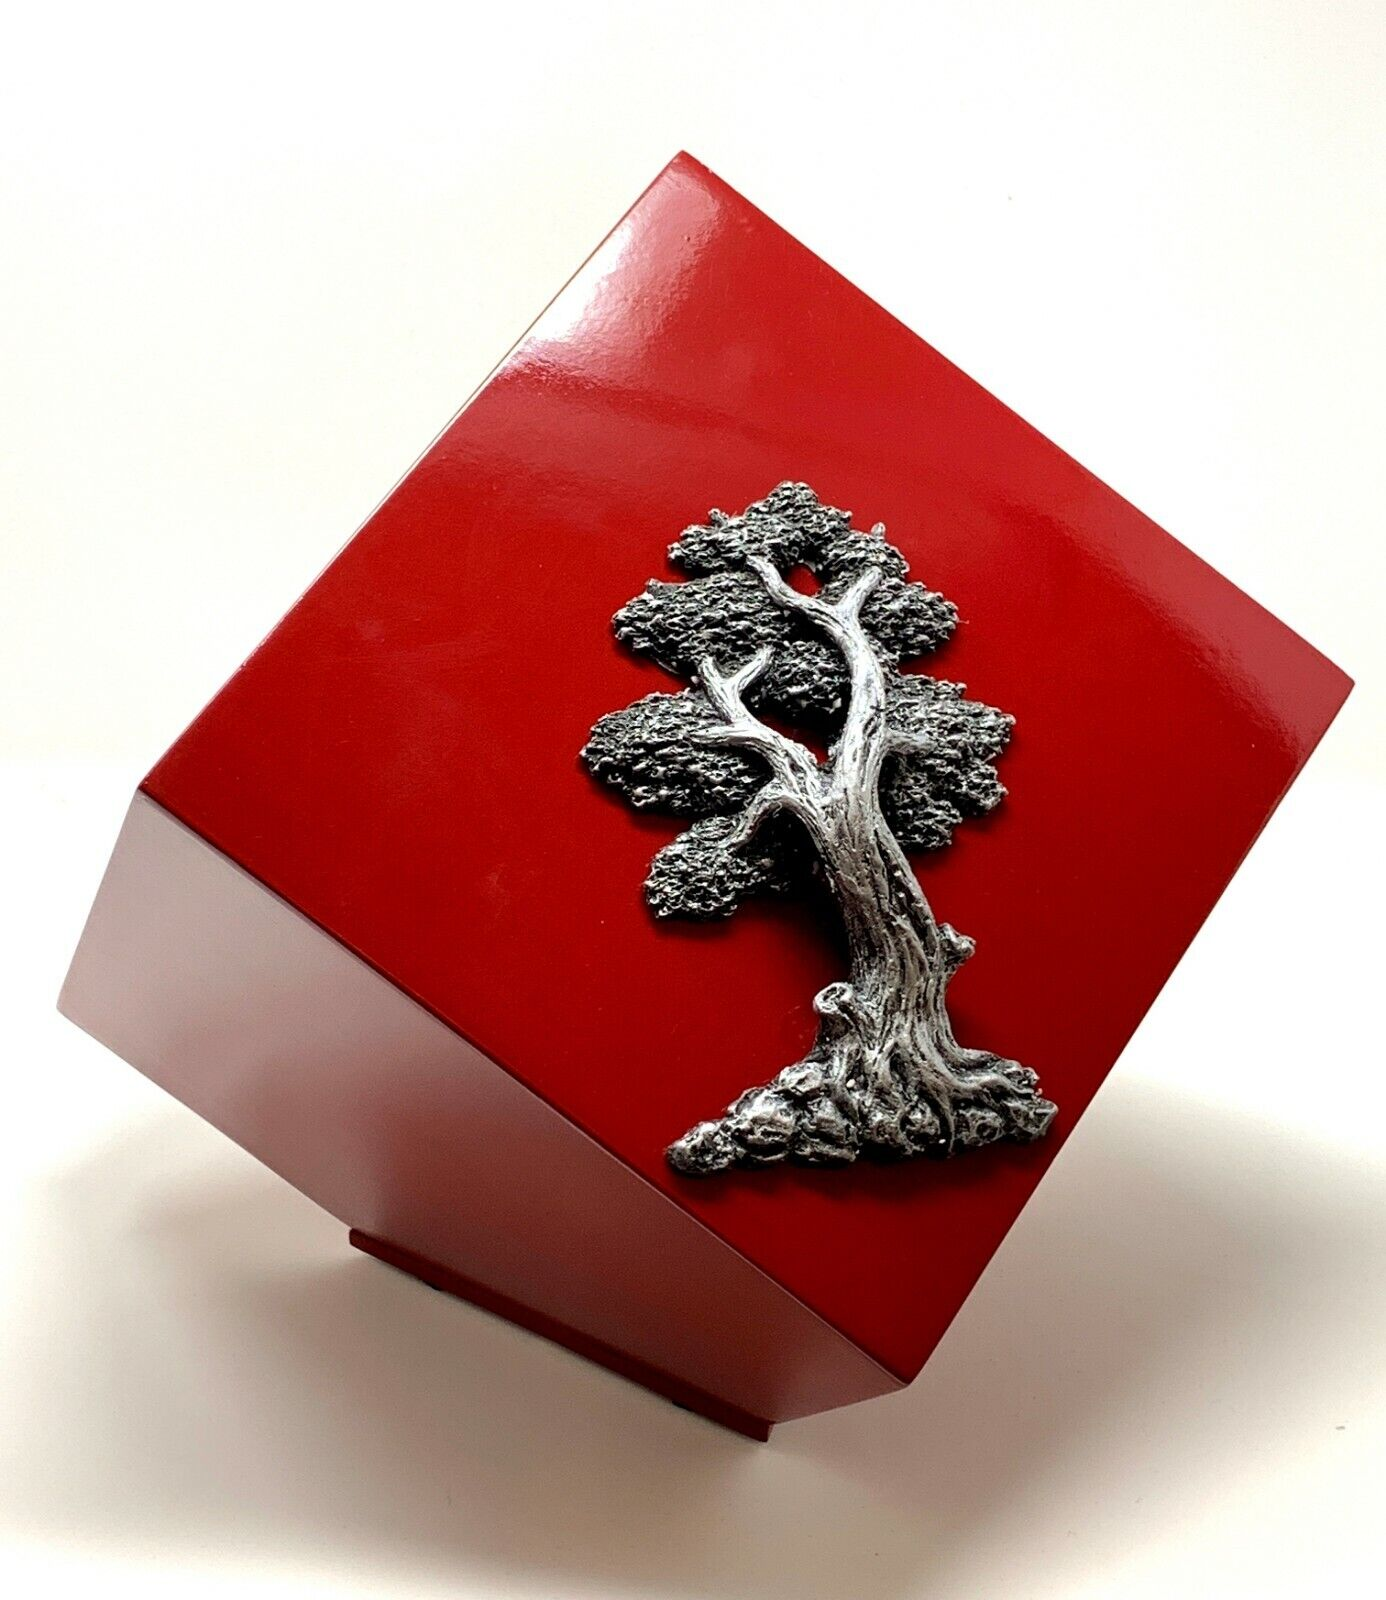 Burial Casket Tree of Life Cremation Urn for Ashes Modern Cube Burial rot Wood